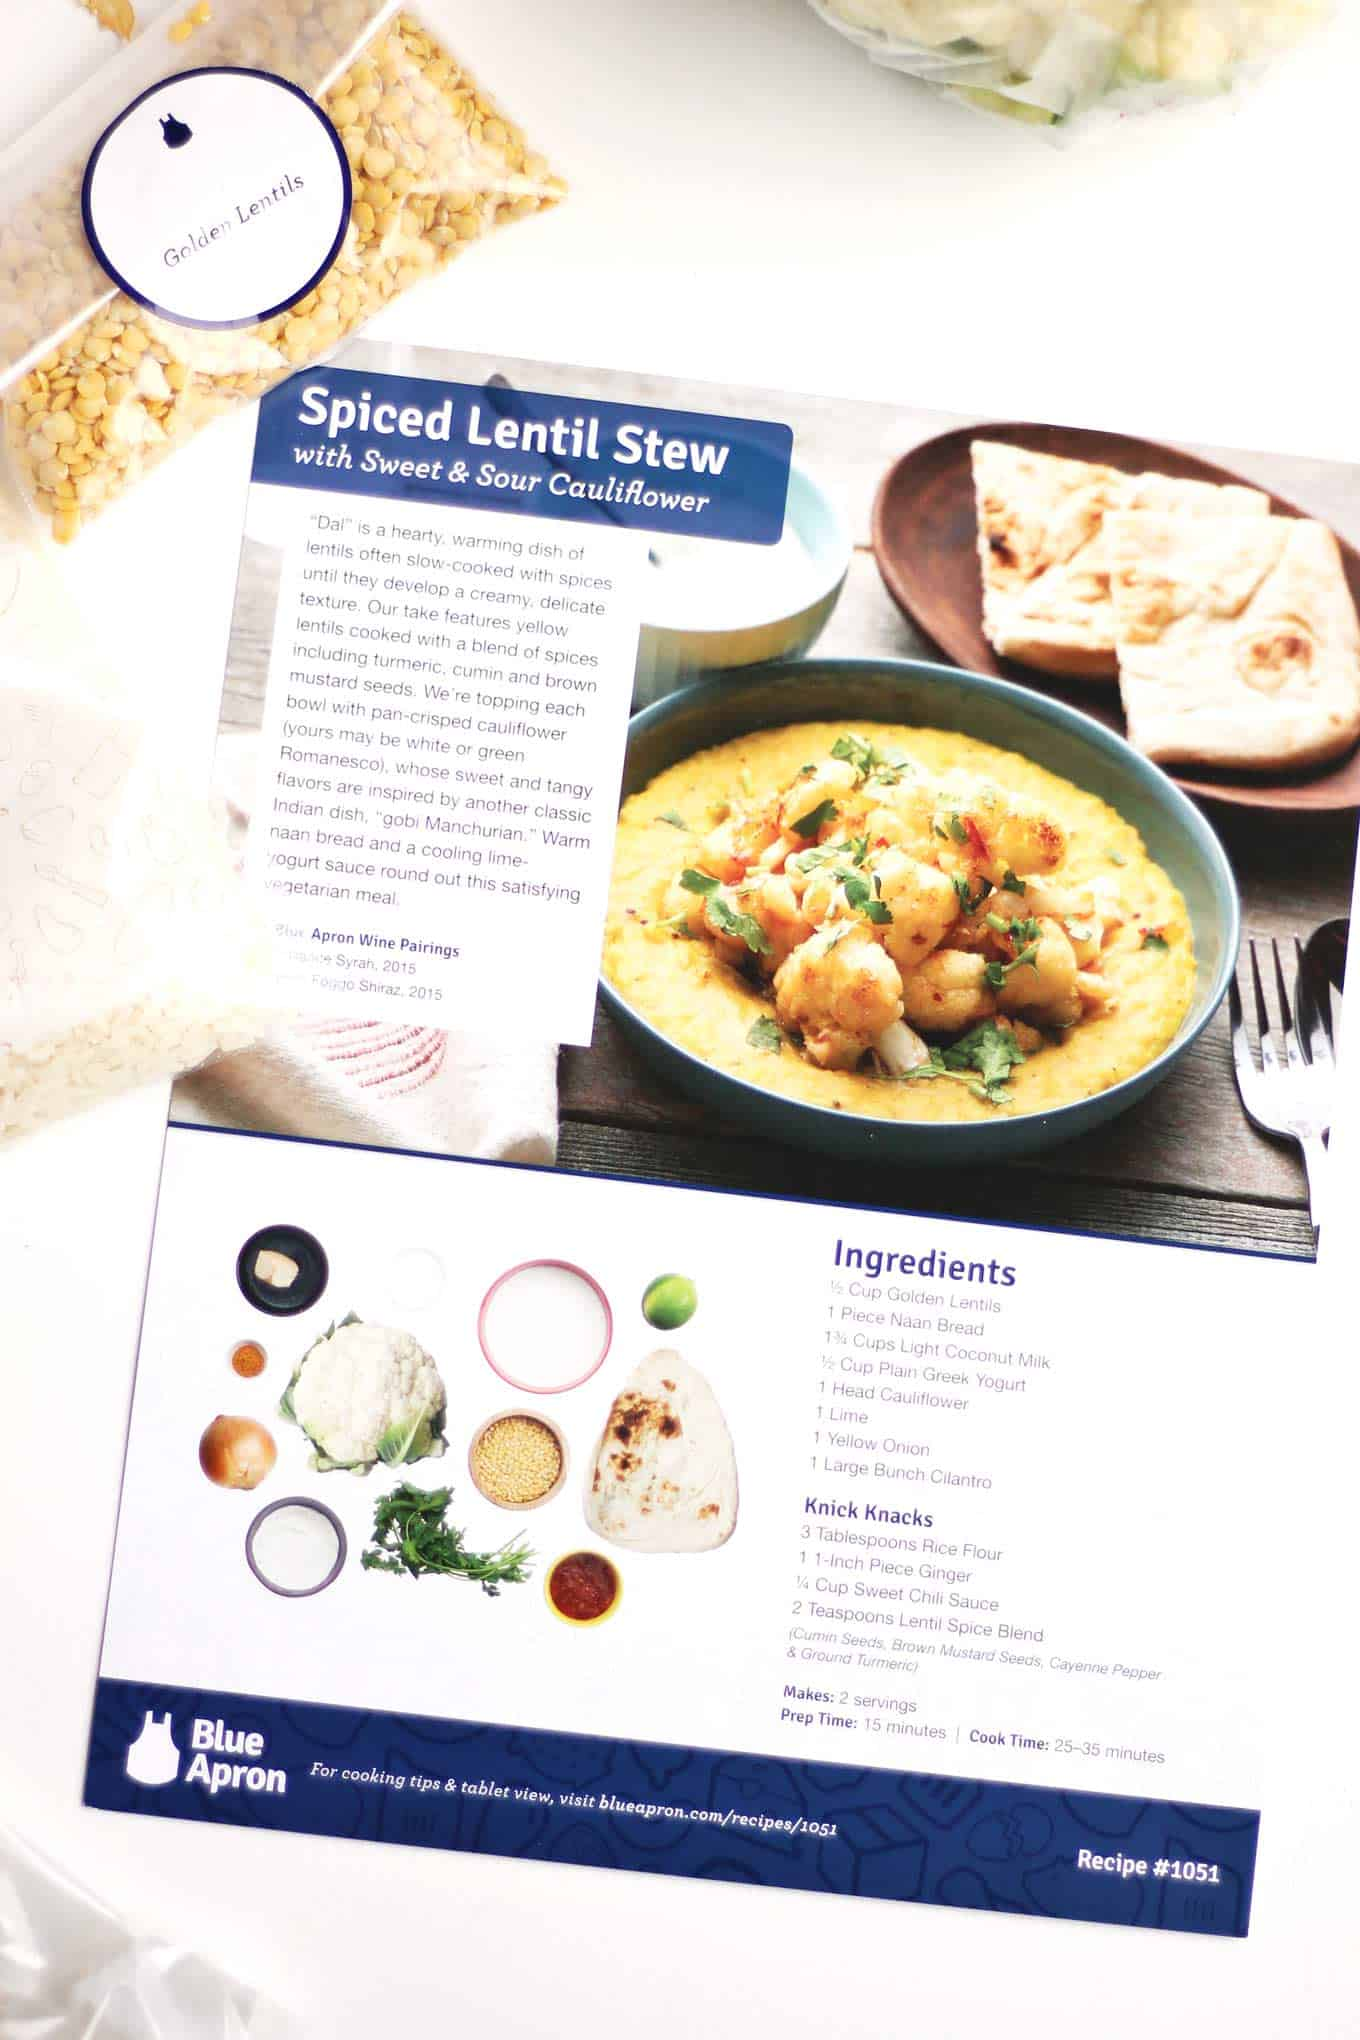 Spiced lentil stew with sweet and sour cauliflower recipe! Yellow lentils spiced with turmeric, cumin, and brown mustard seed, and topped with crispy sweet and sour cauliflower. A delicious, healthy, and hearty vegetarian dinner that the whole family will love. Vegetarian, and easily adapted to a vegan and/or gluten free diet. So good! - Rhubarbarians